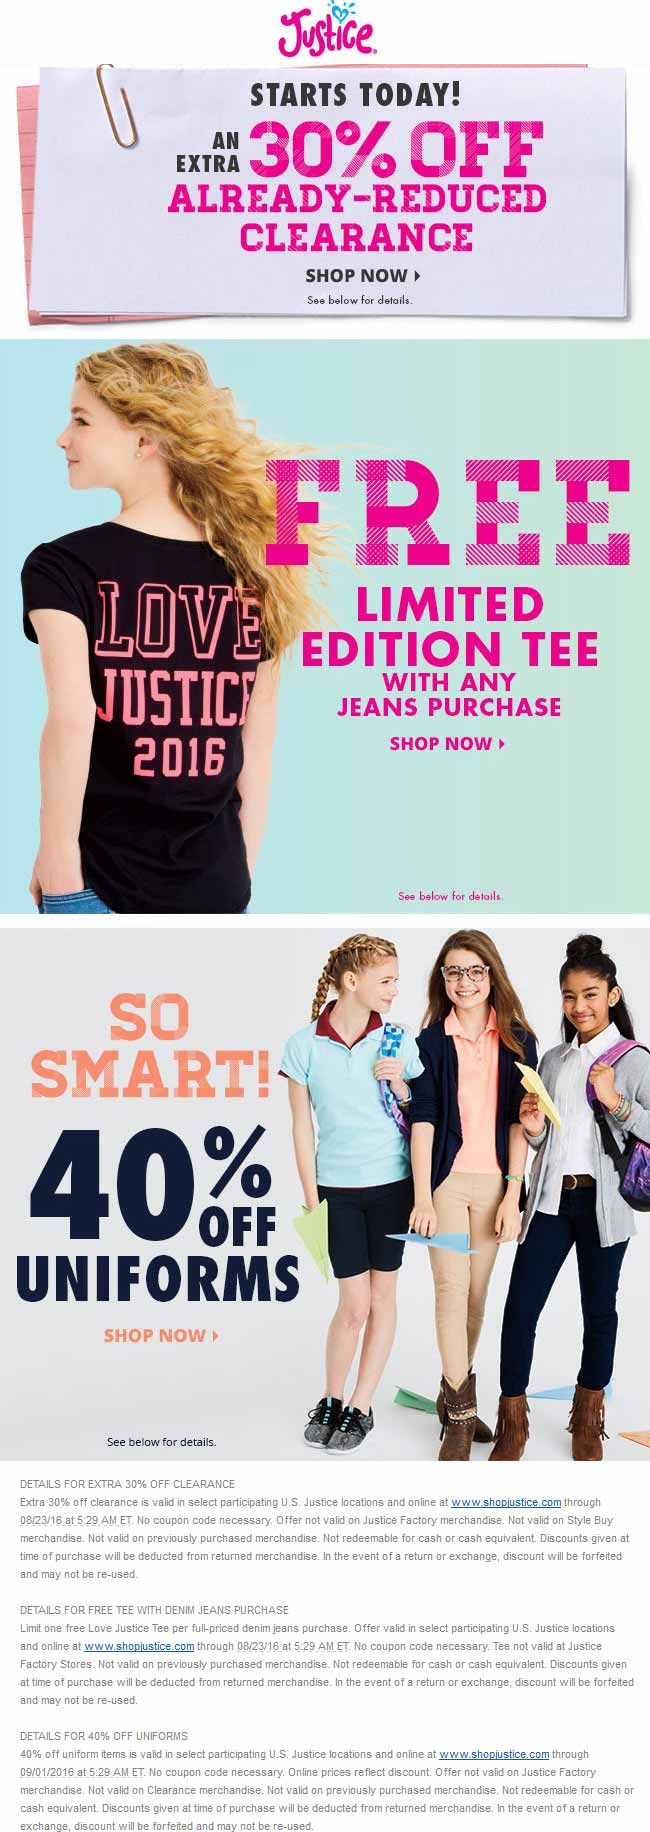 Justice Coupon January 2018 Extra 30% off clearance, 40% off uniforms, free shirt with jeans at Justice, ditto online